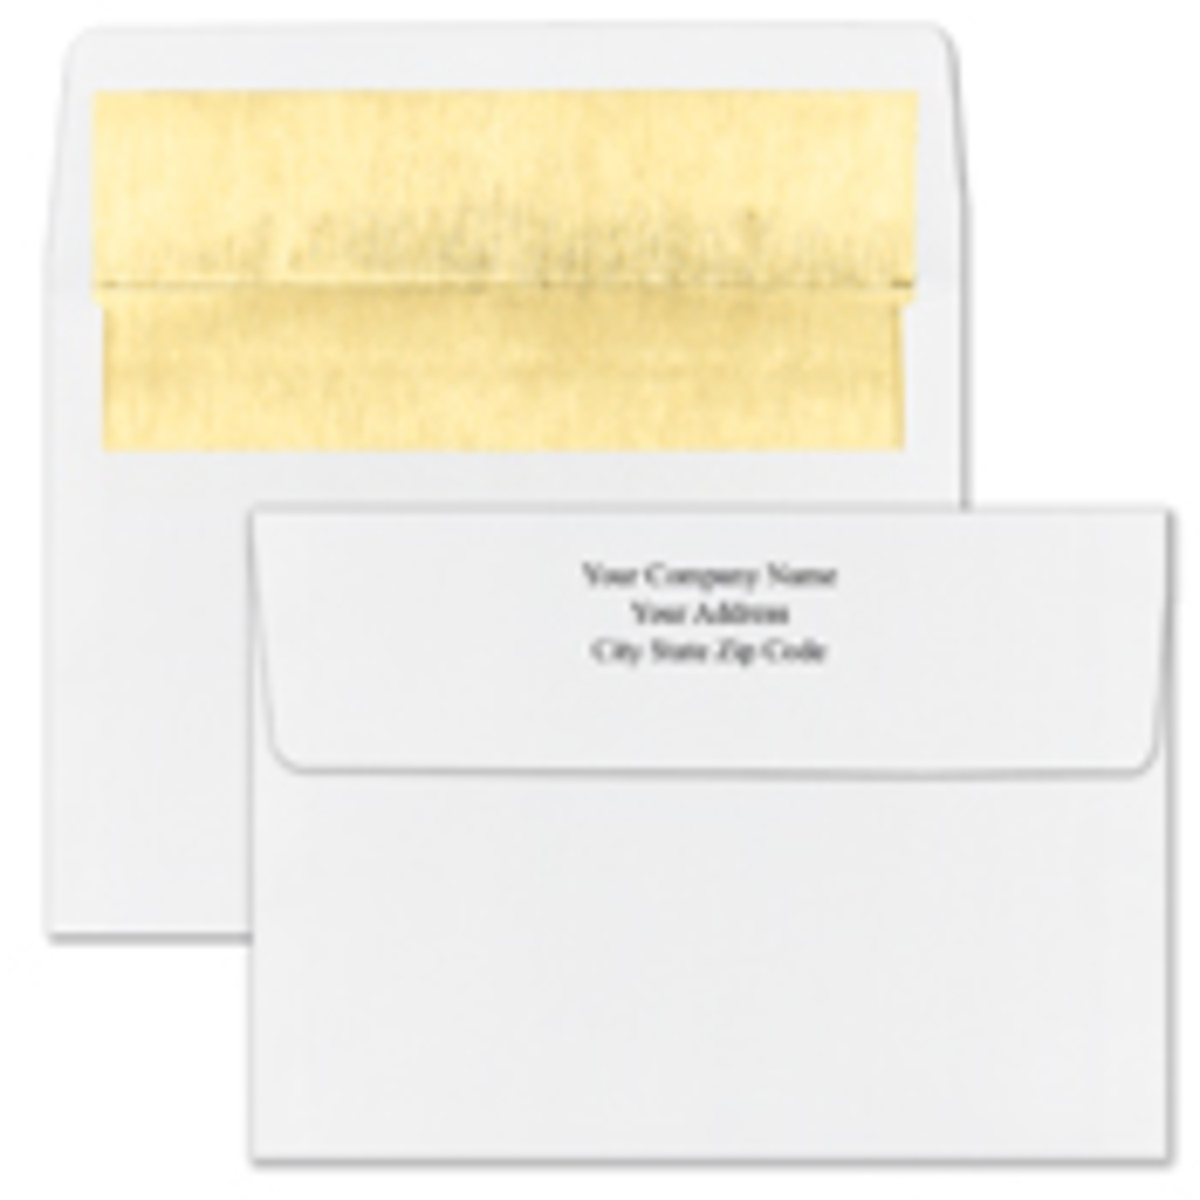 Recycled Gold Foil Lined White Envelope - Printed